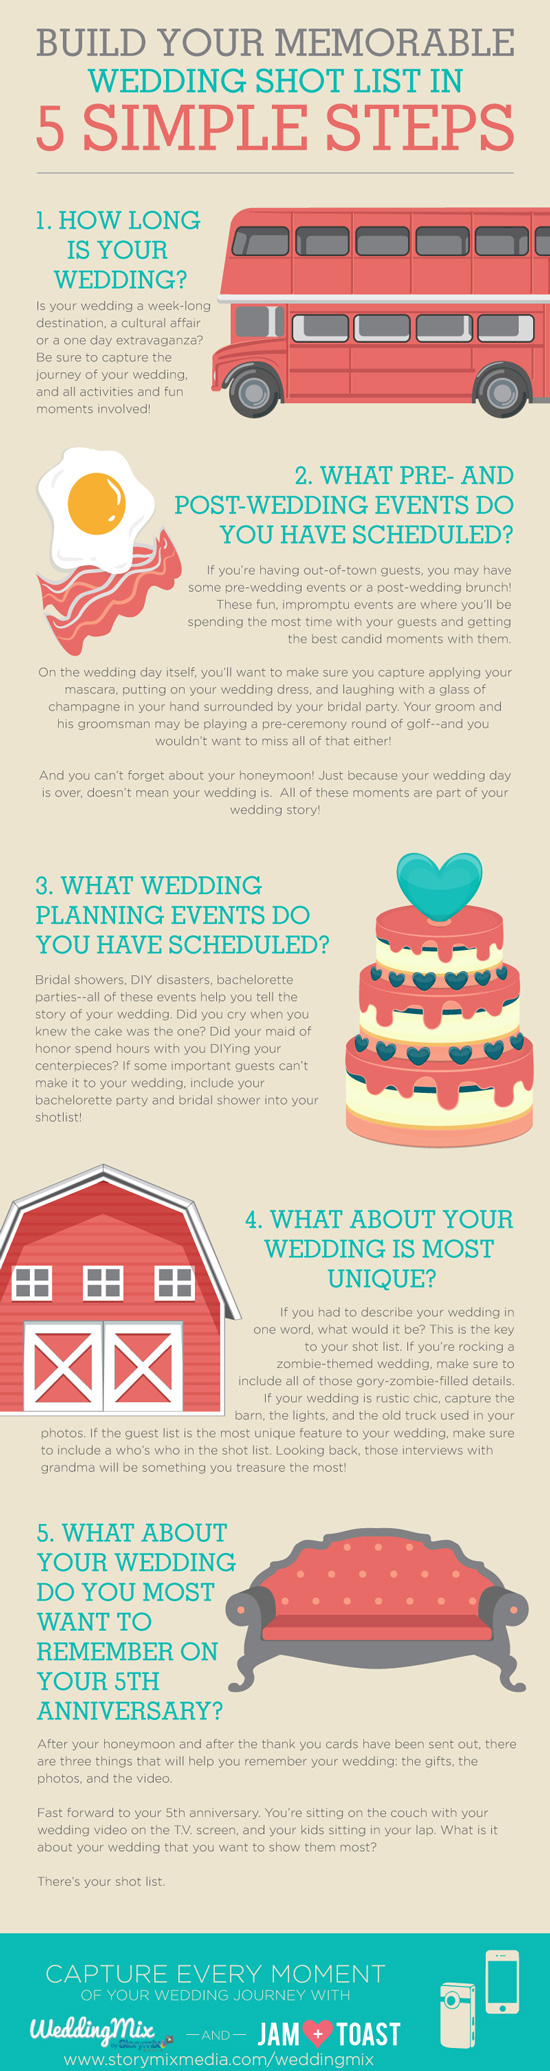 Wedding Photo CheckList - Infographic